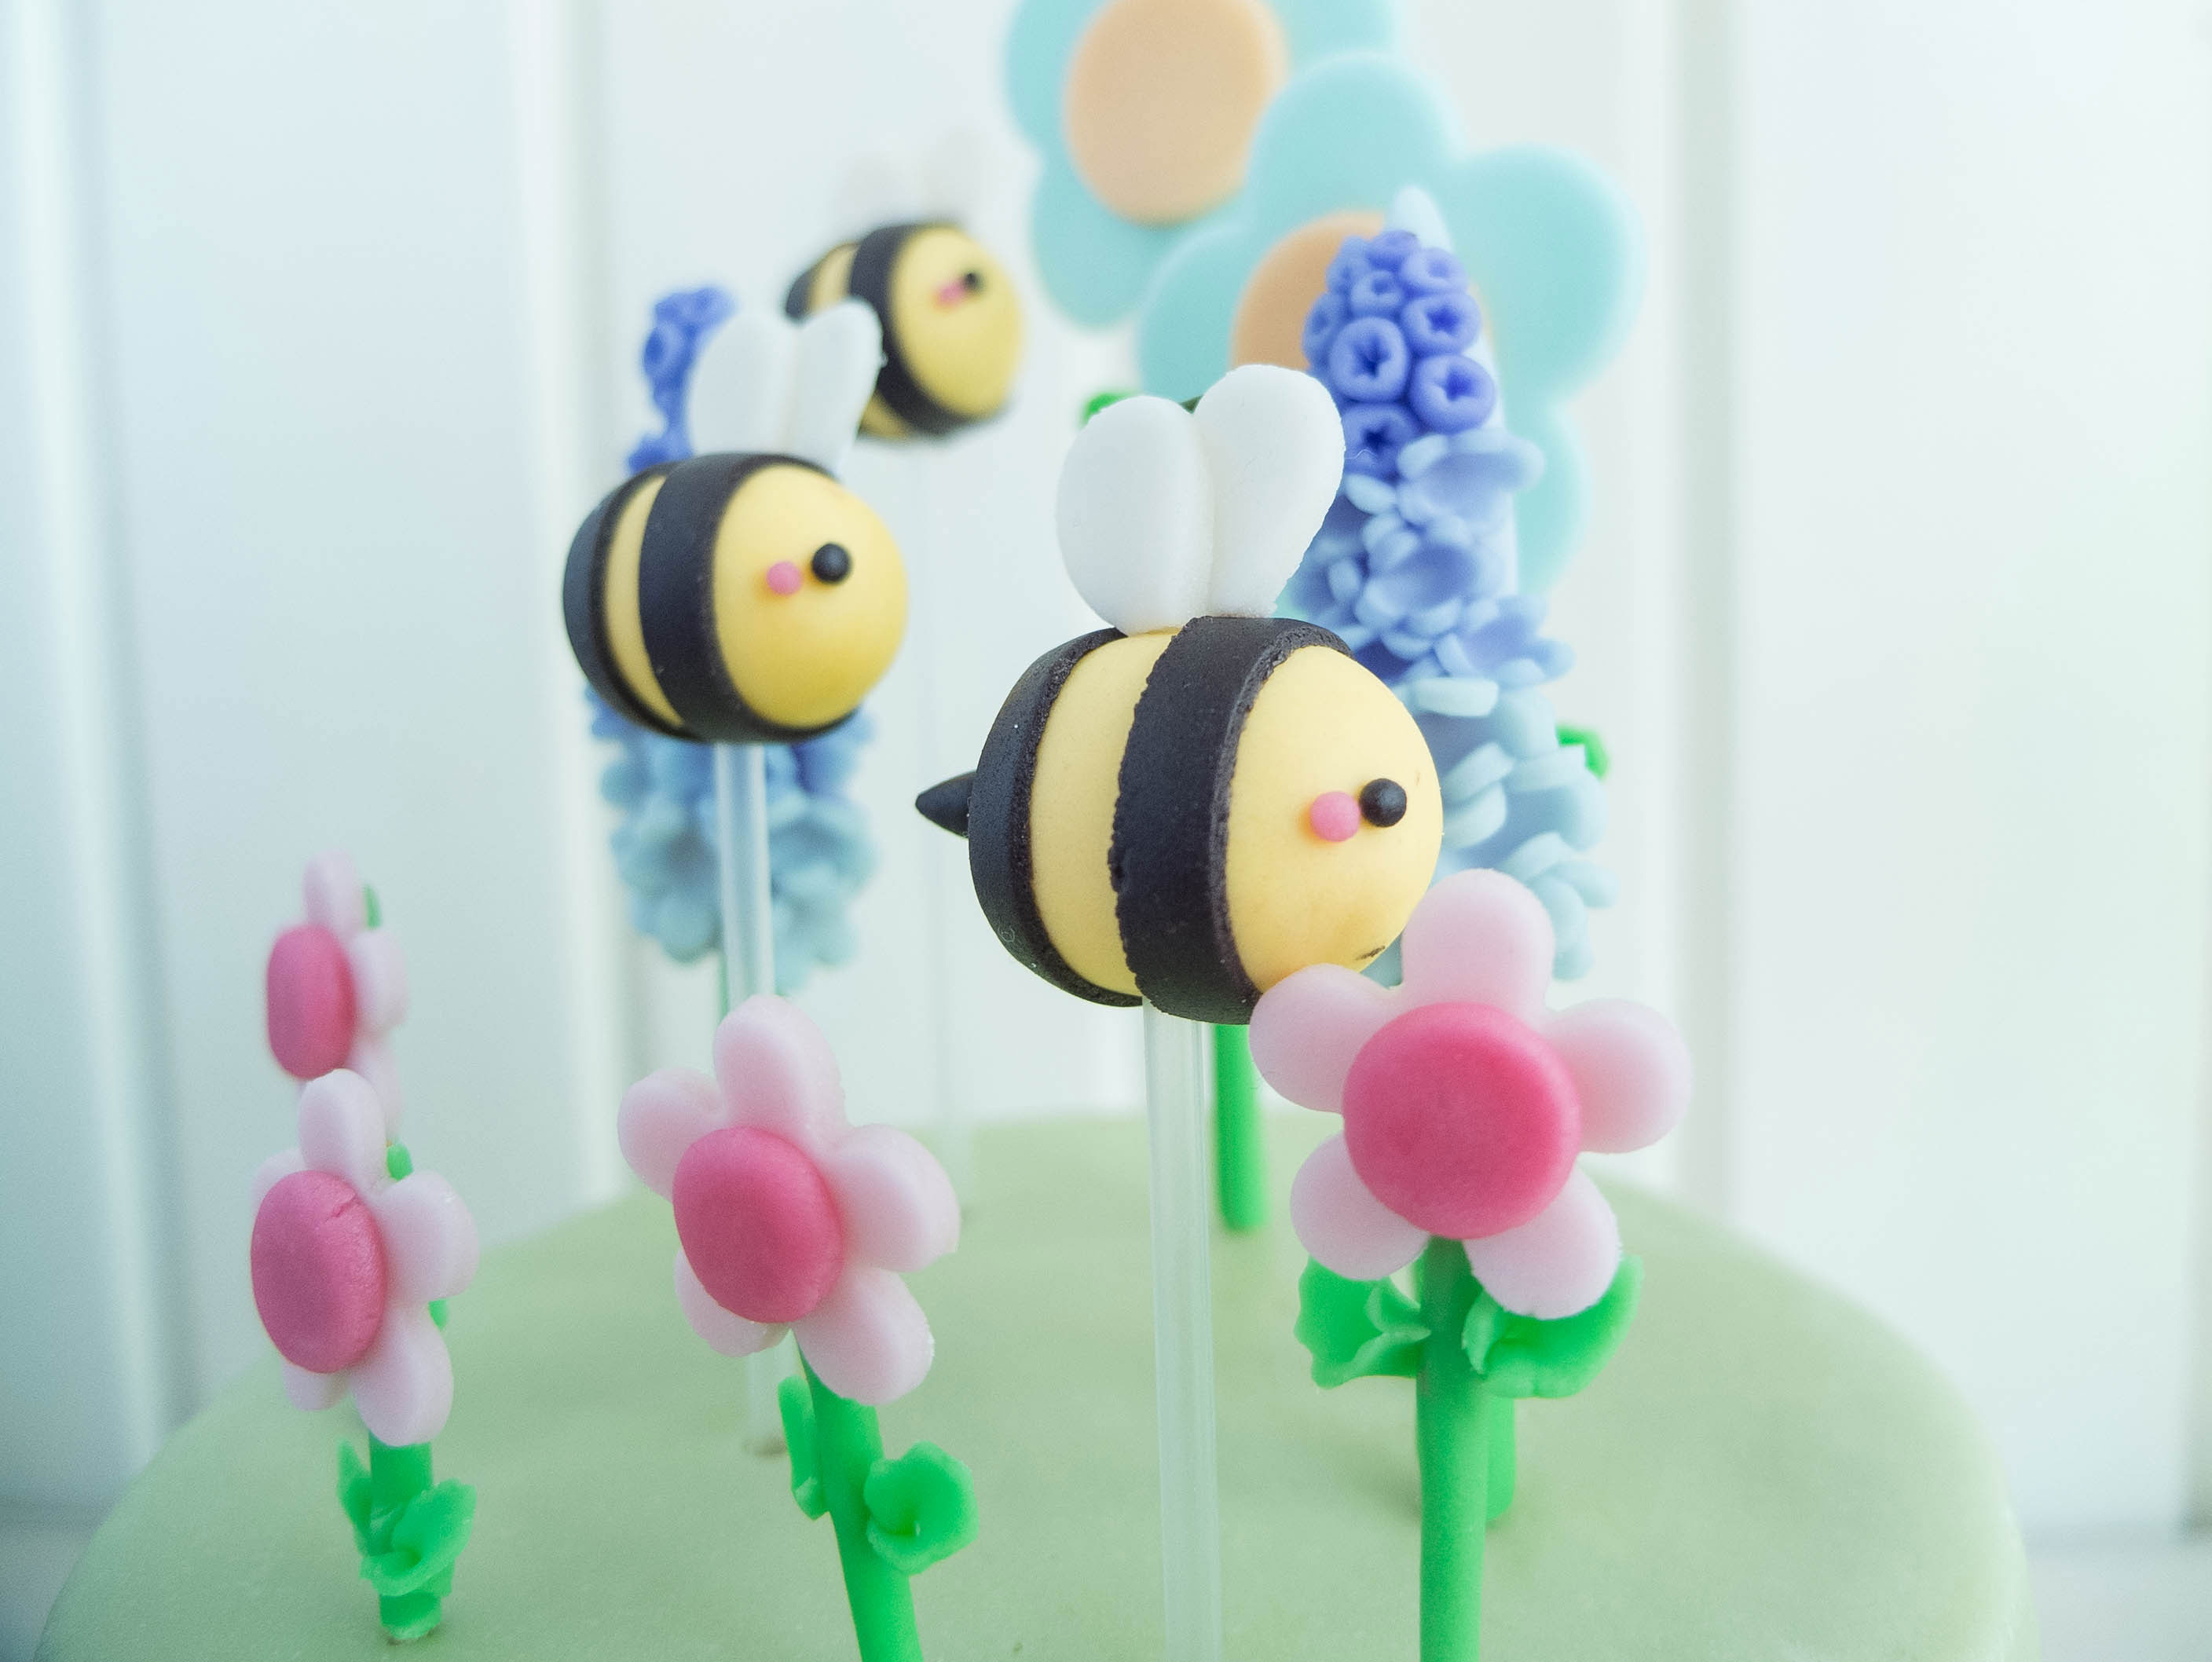 Meadow_Bees-5